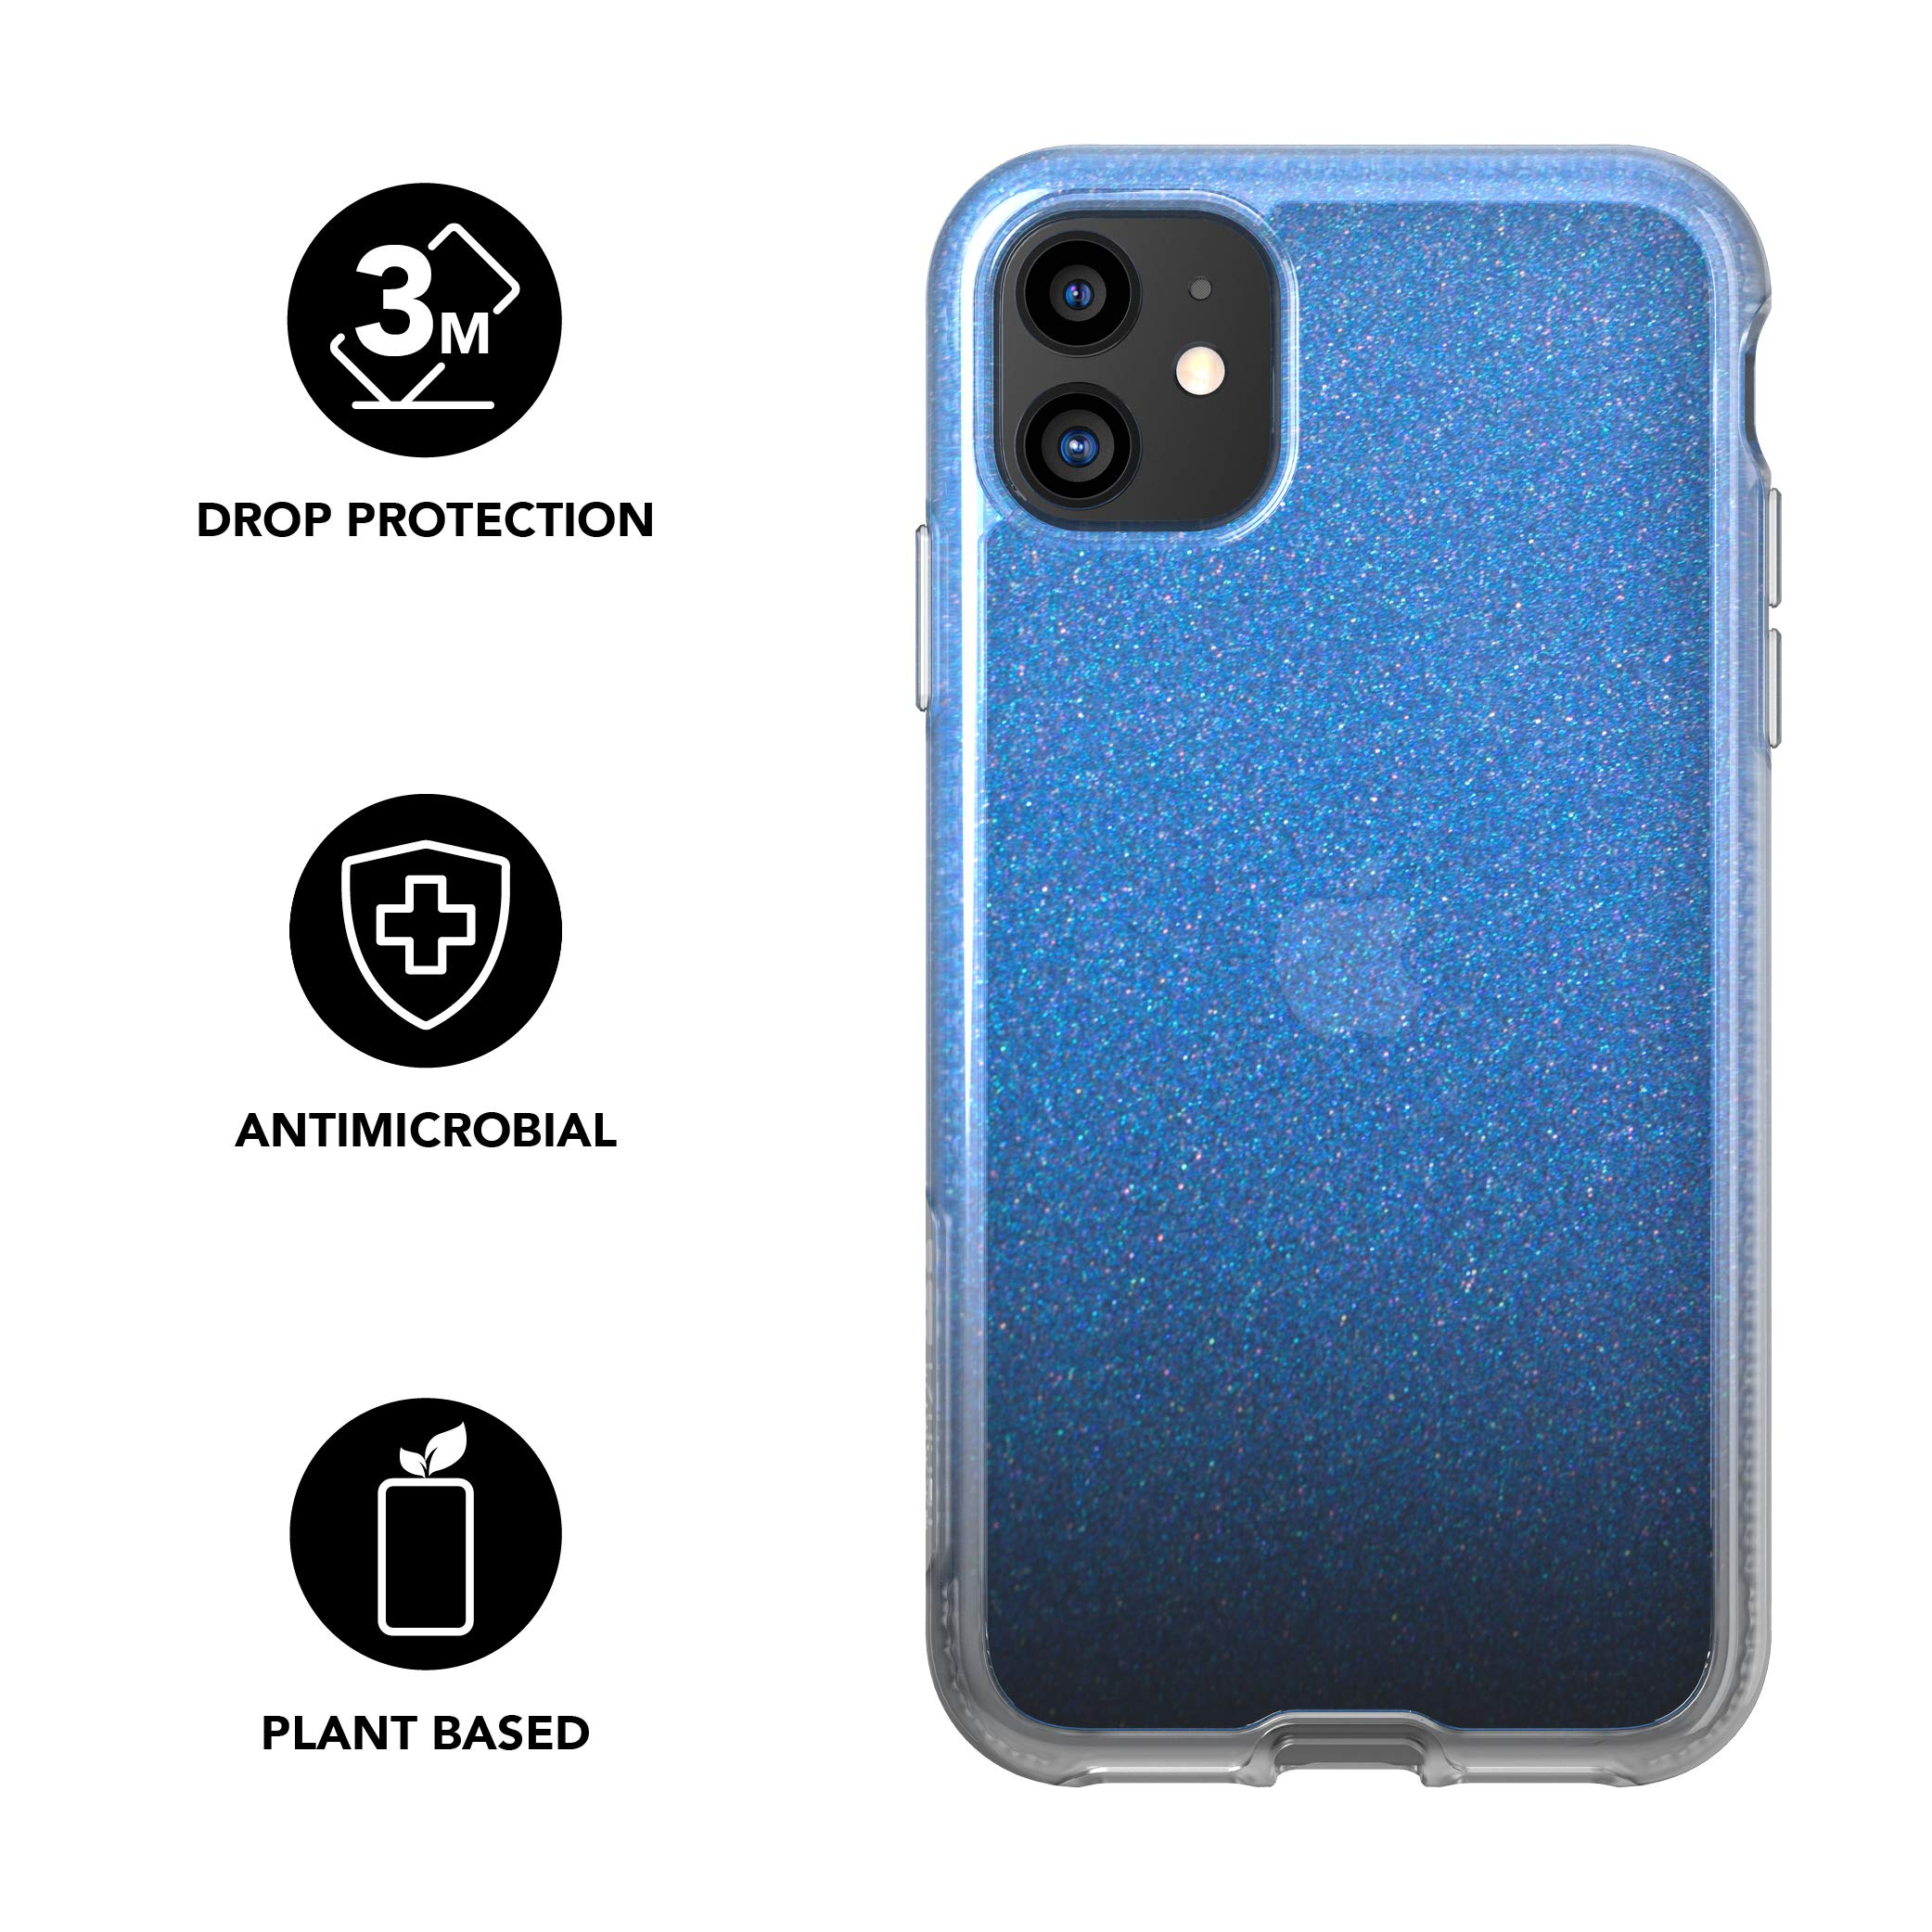 tech21 Pure Shimmer Mobile Phone Case - Compatible with iPhone 11 - Ultra Thin, Shimmer Effect with Anti-Microbial Properties and Drop Protection, Blue